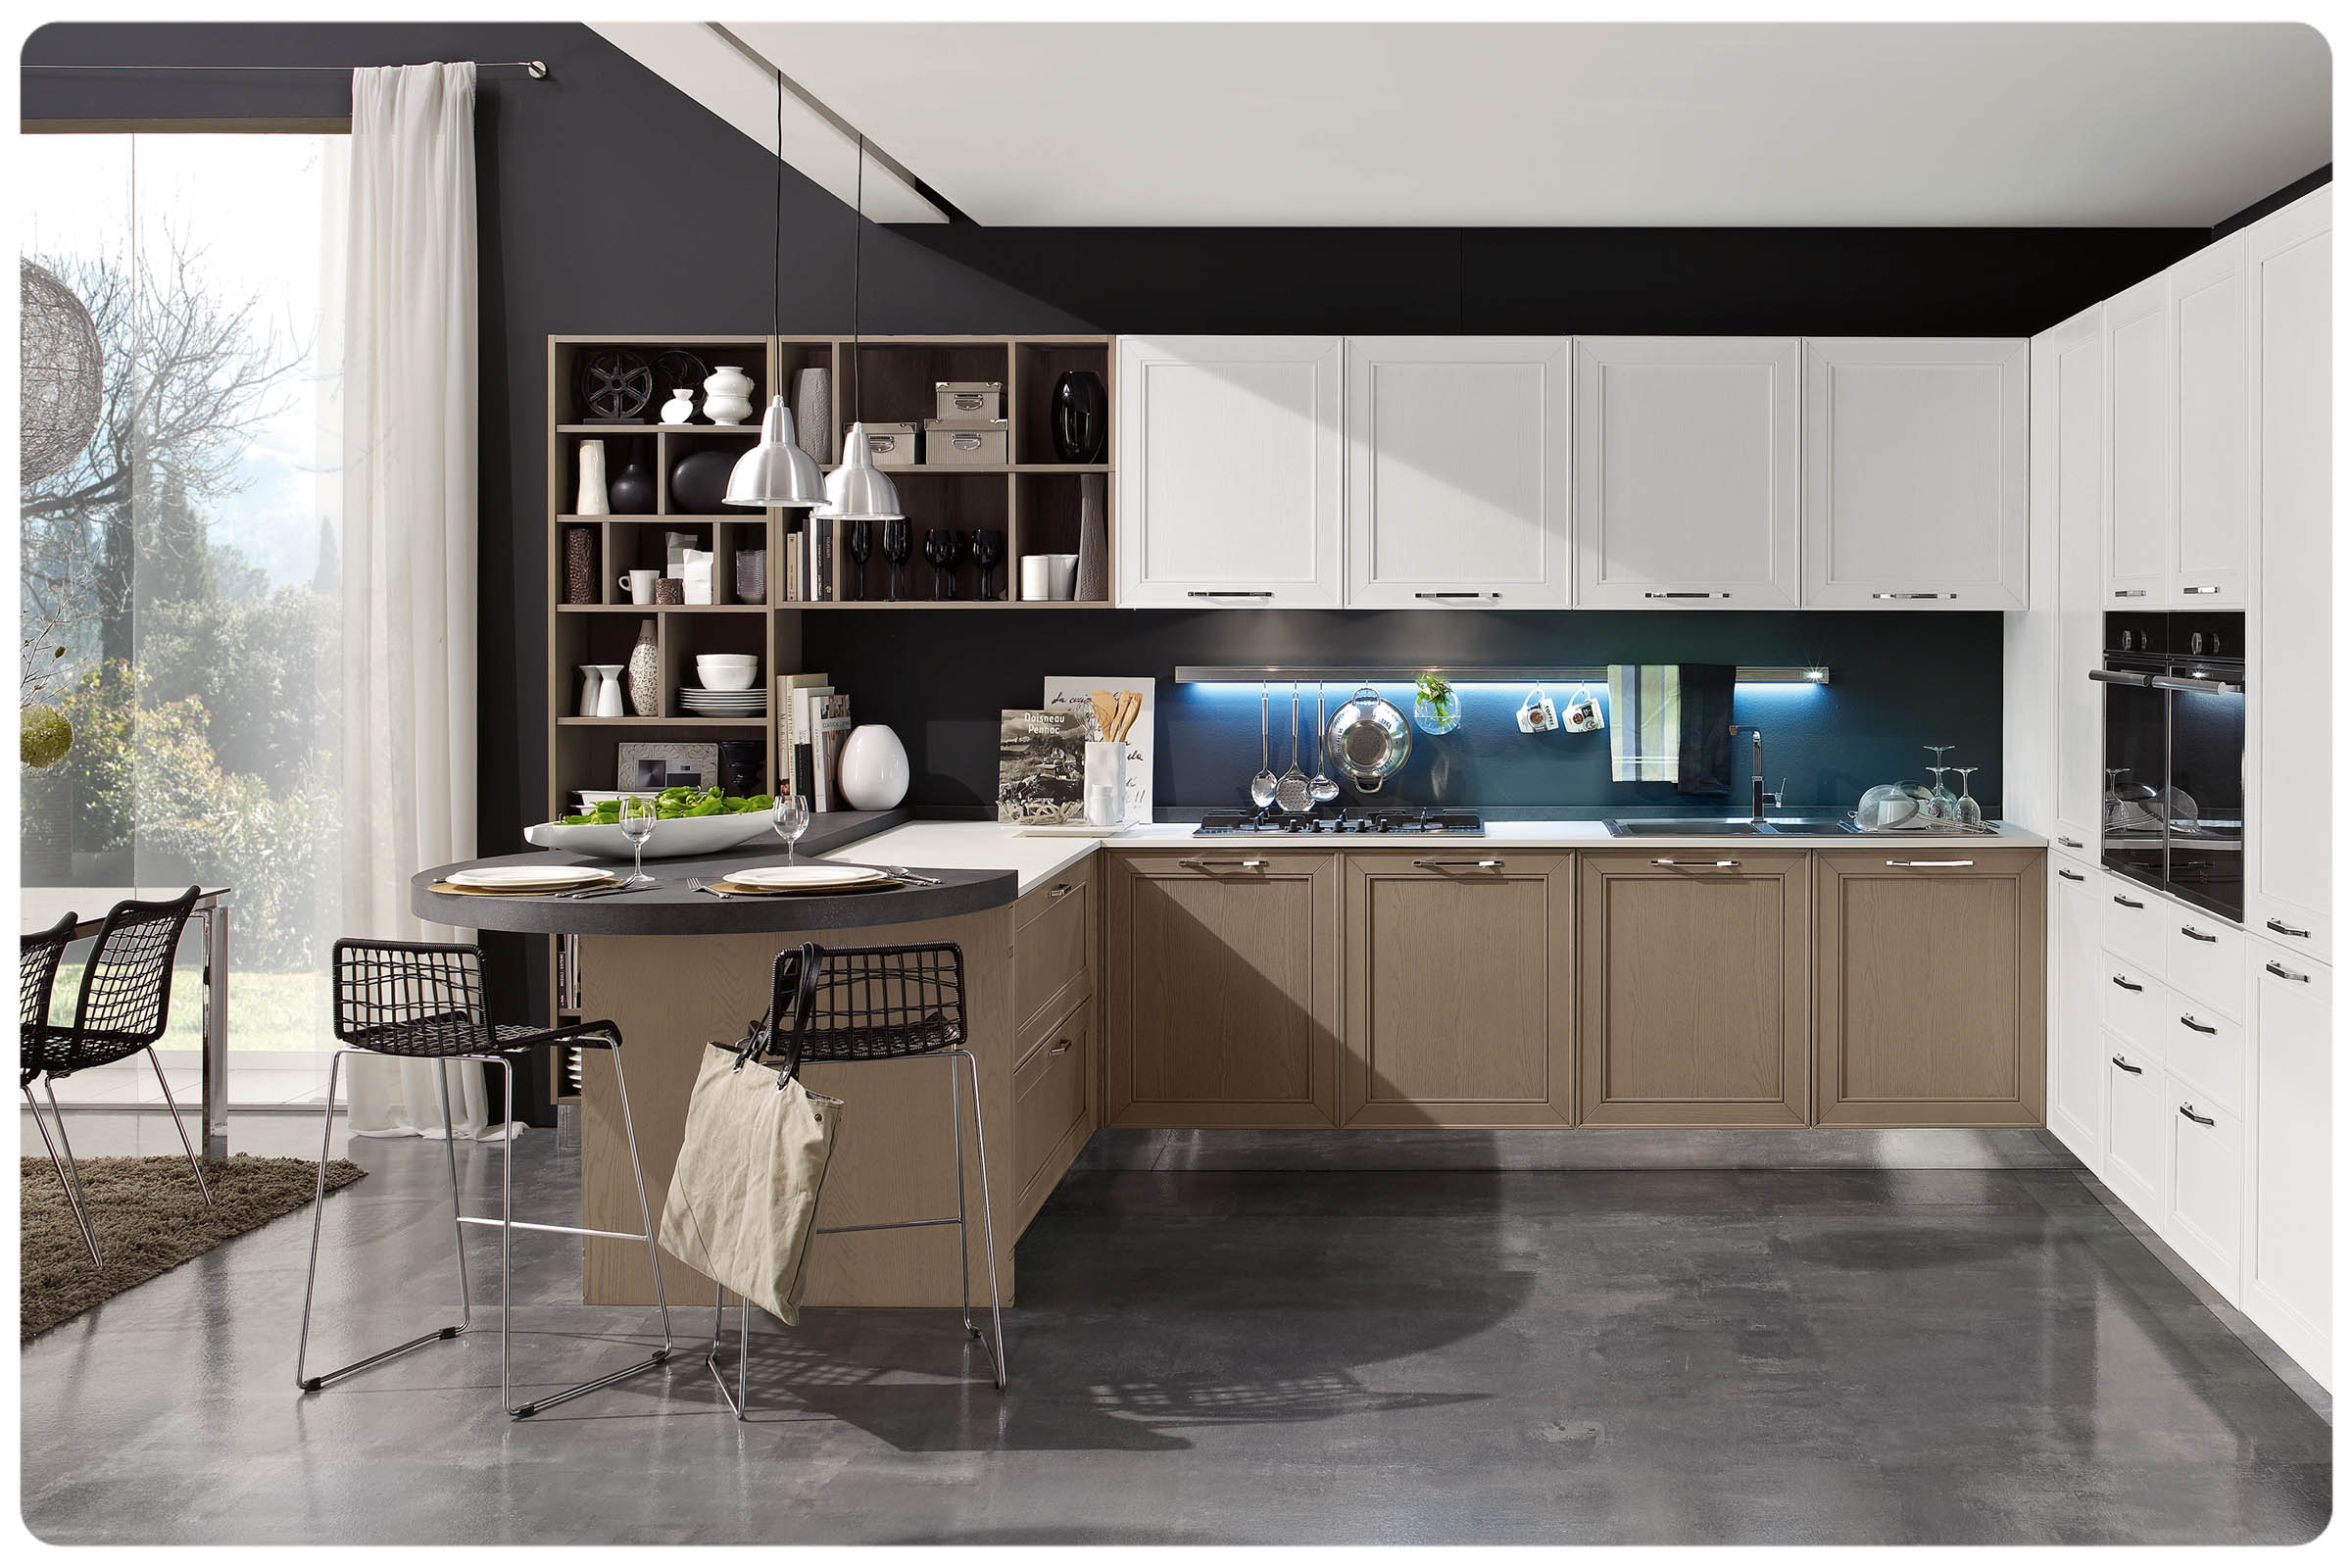 Outlet cucine milano e provincia view images outlet for Outlet cucine lombardia